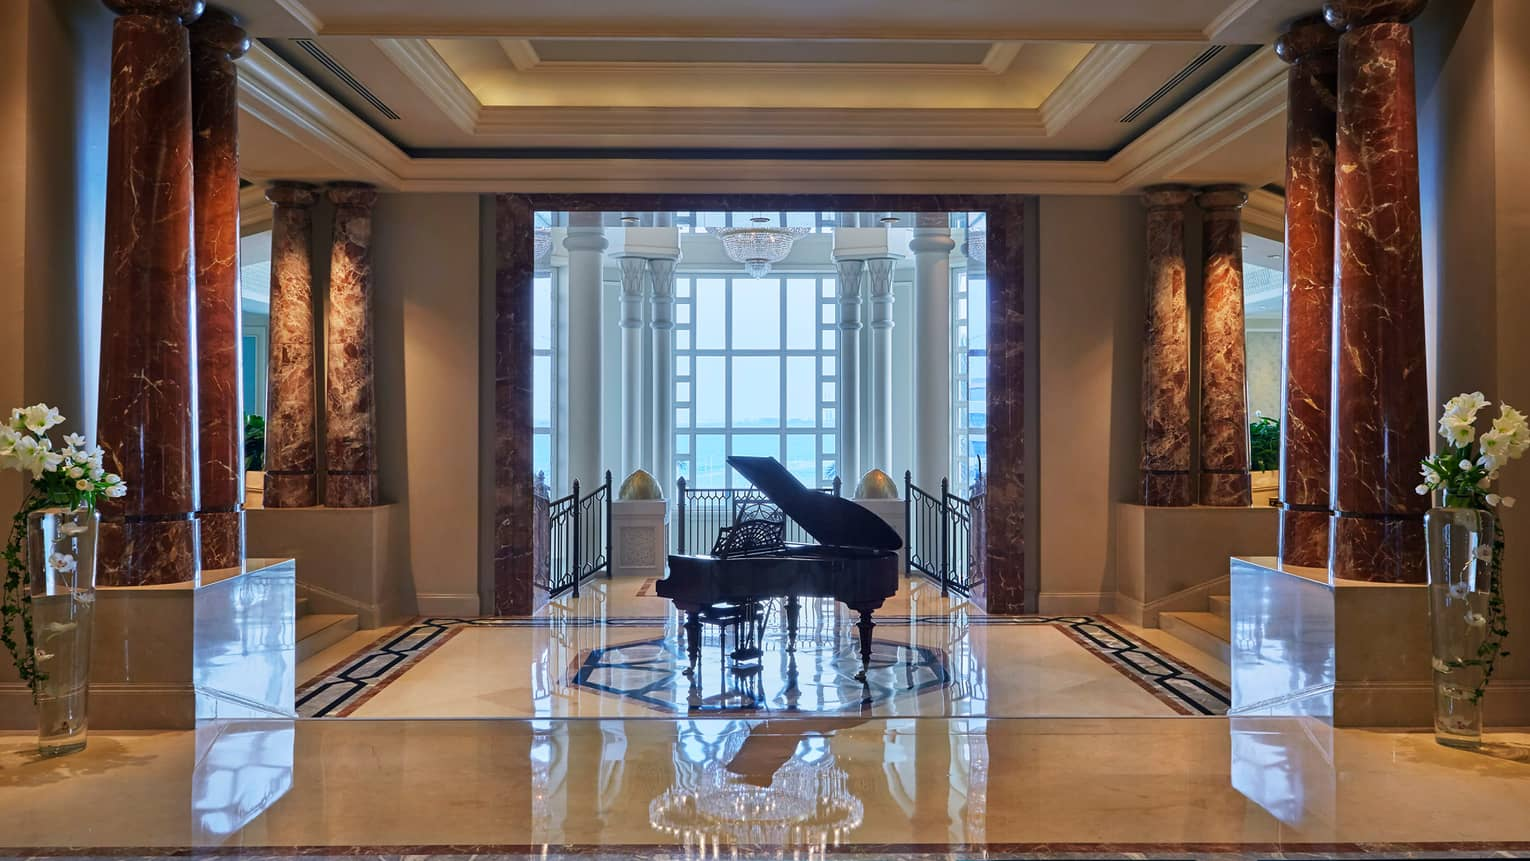 Grand piano by stairs in large lobby with marble floors